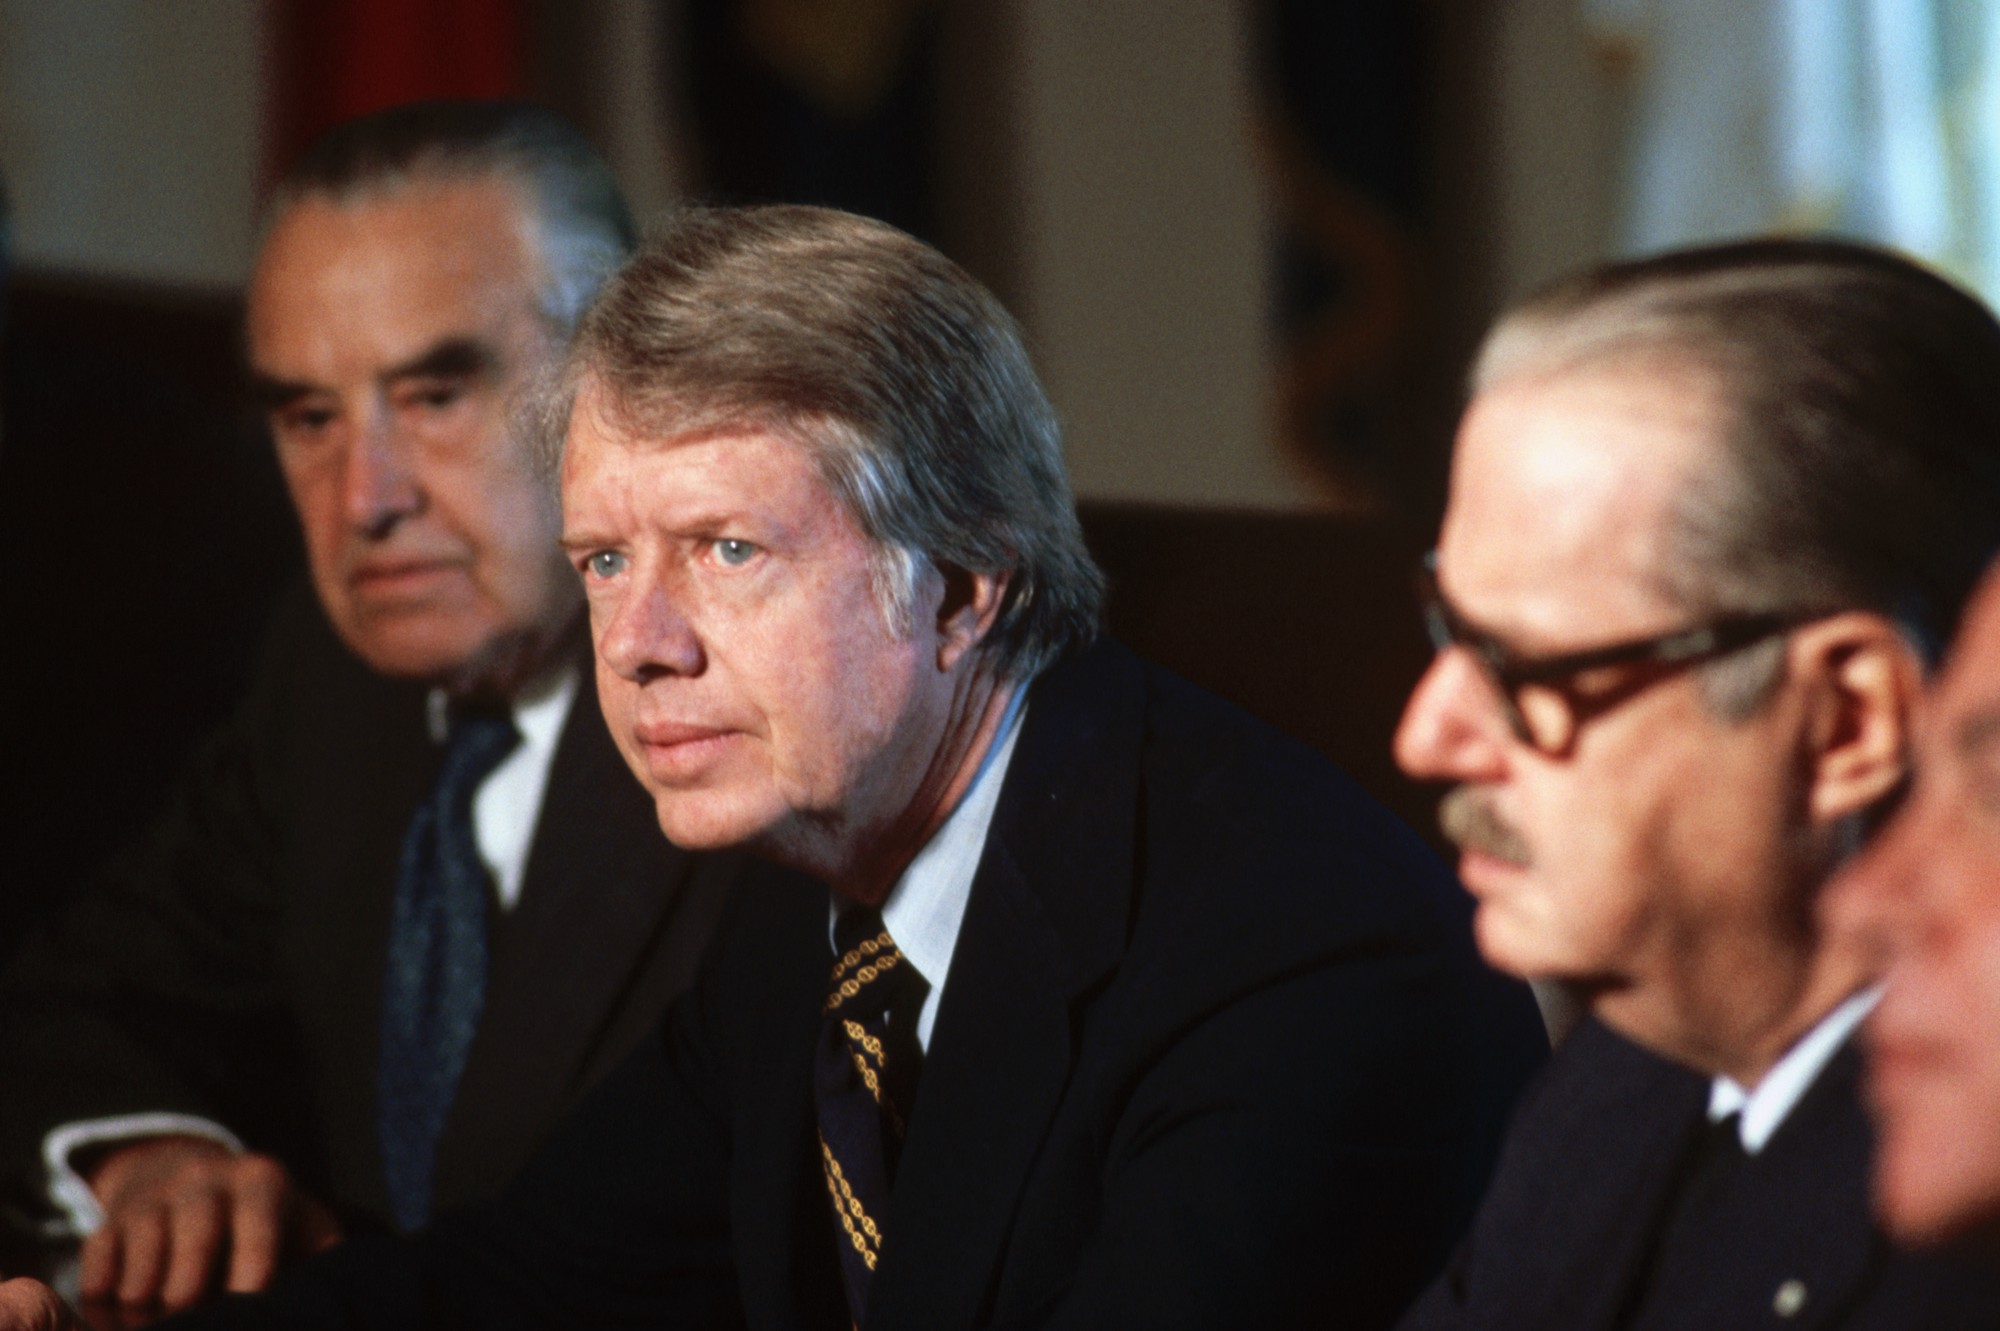 In 1979, the president axed 6 cabinet members in one day, citing ...